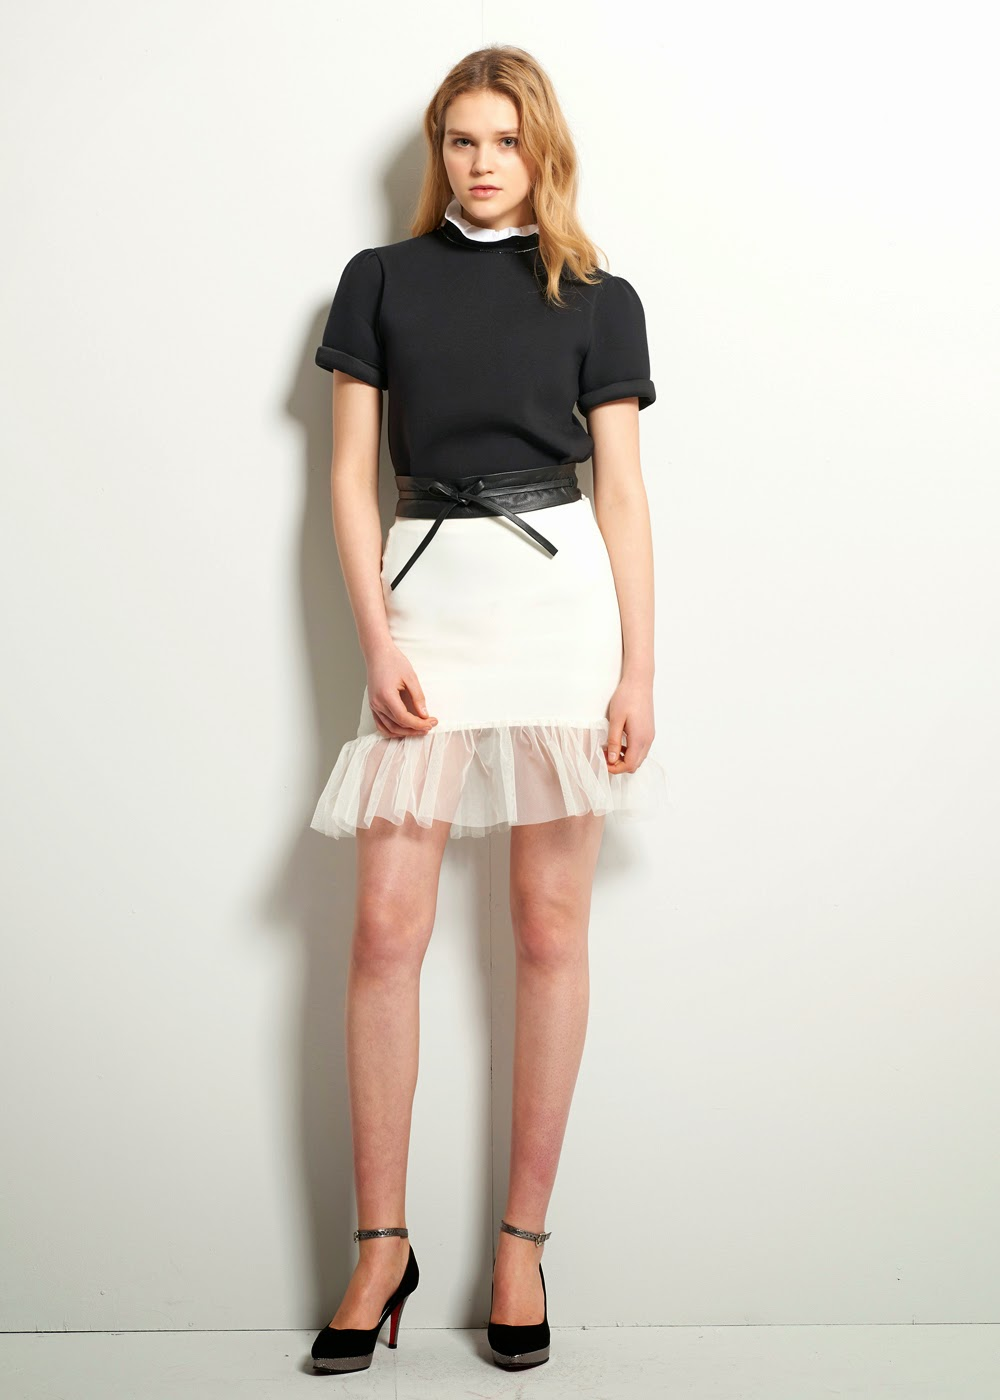 http://www.storets.com/shop/clothing/bottoms/skirts/petite-tulle-skirt-ivory.html